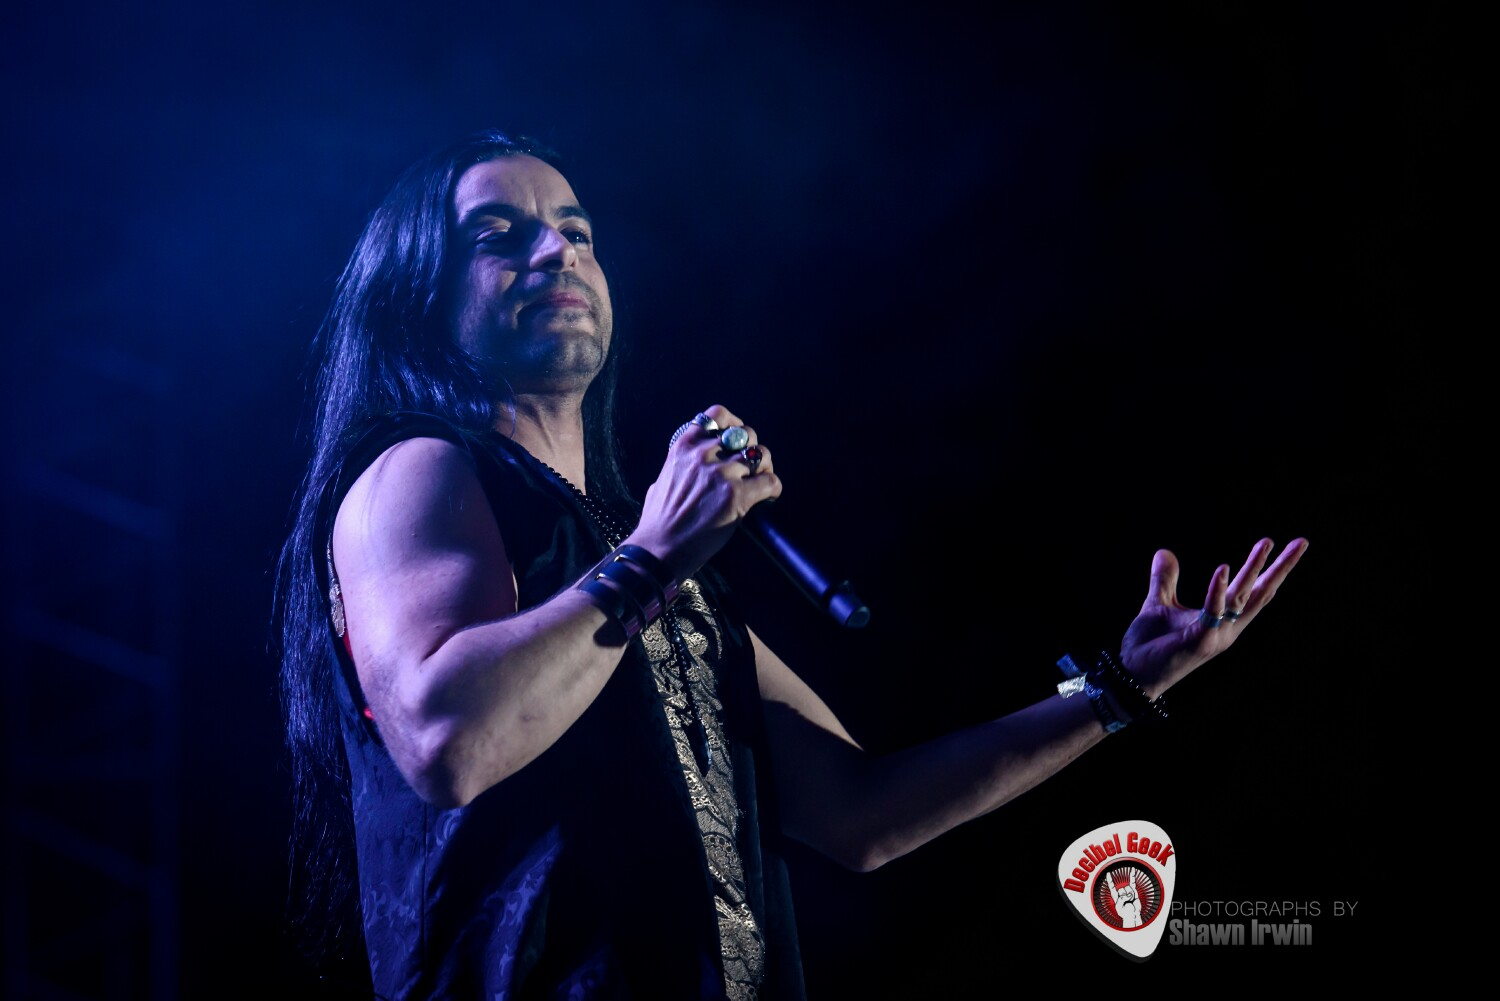 Myrath 2nd Show #43-SRF 2019-Shawn Irwin